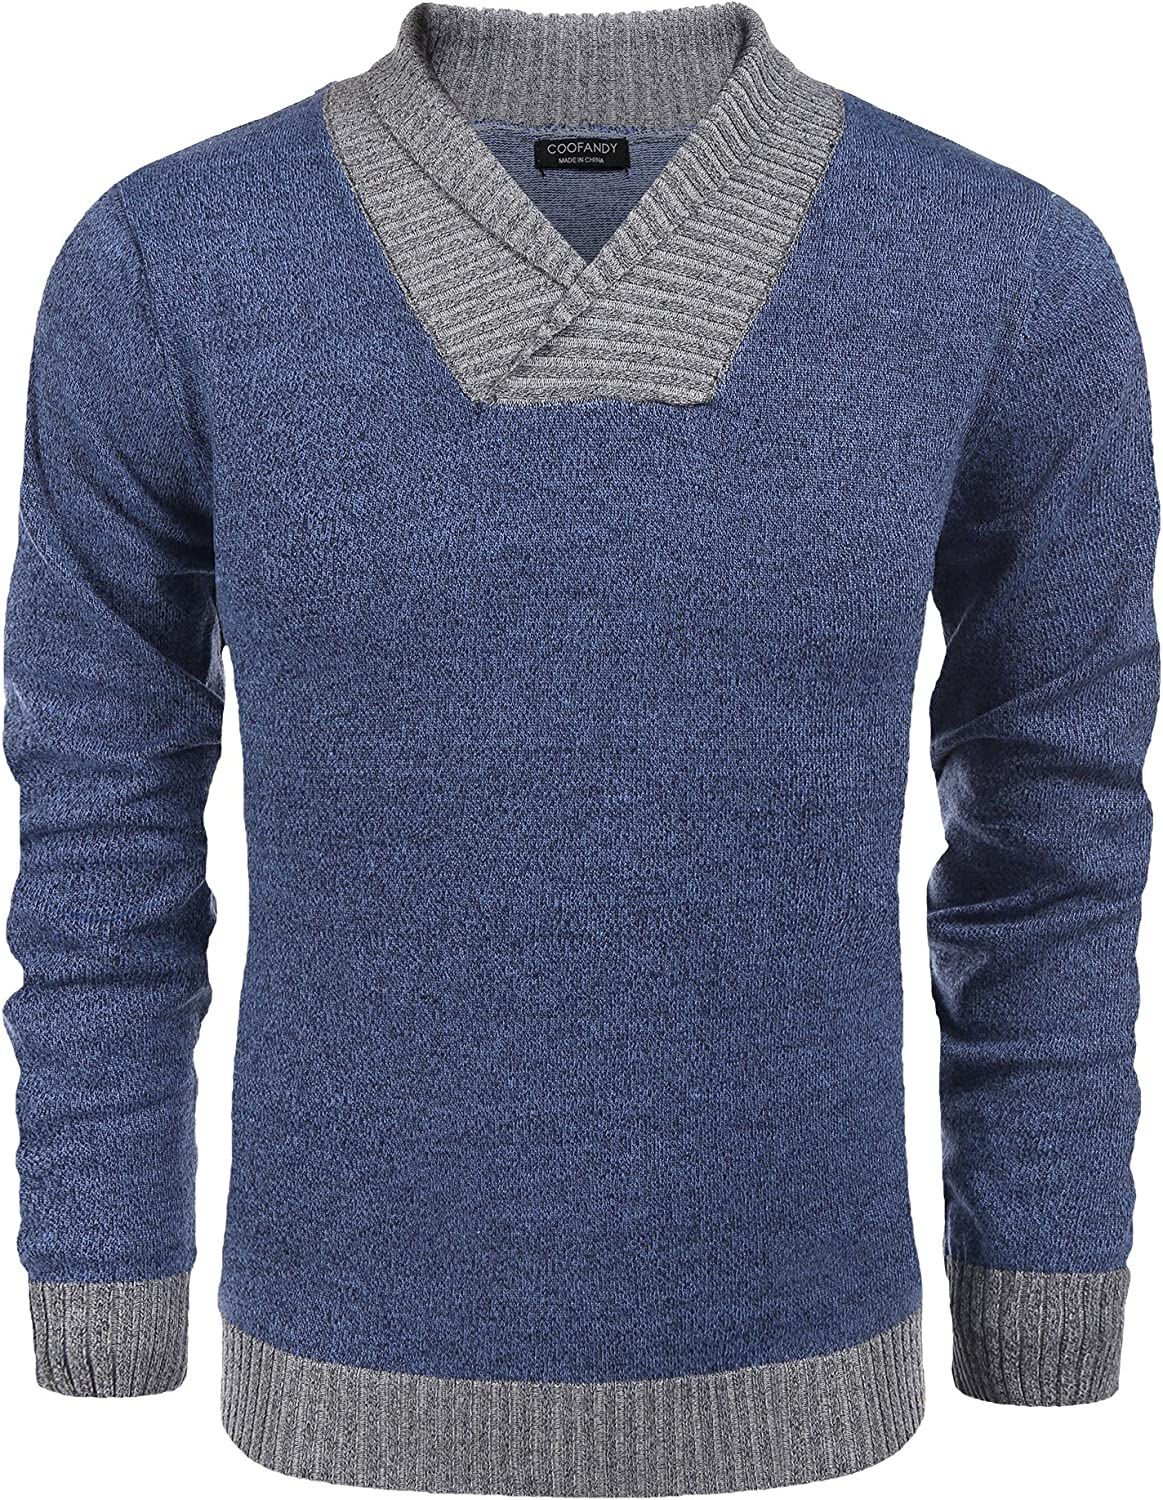 COOFANDY Men's Knitted Sweaters Casual V-Neck Slim Fit Pullover Knitwear